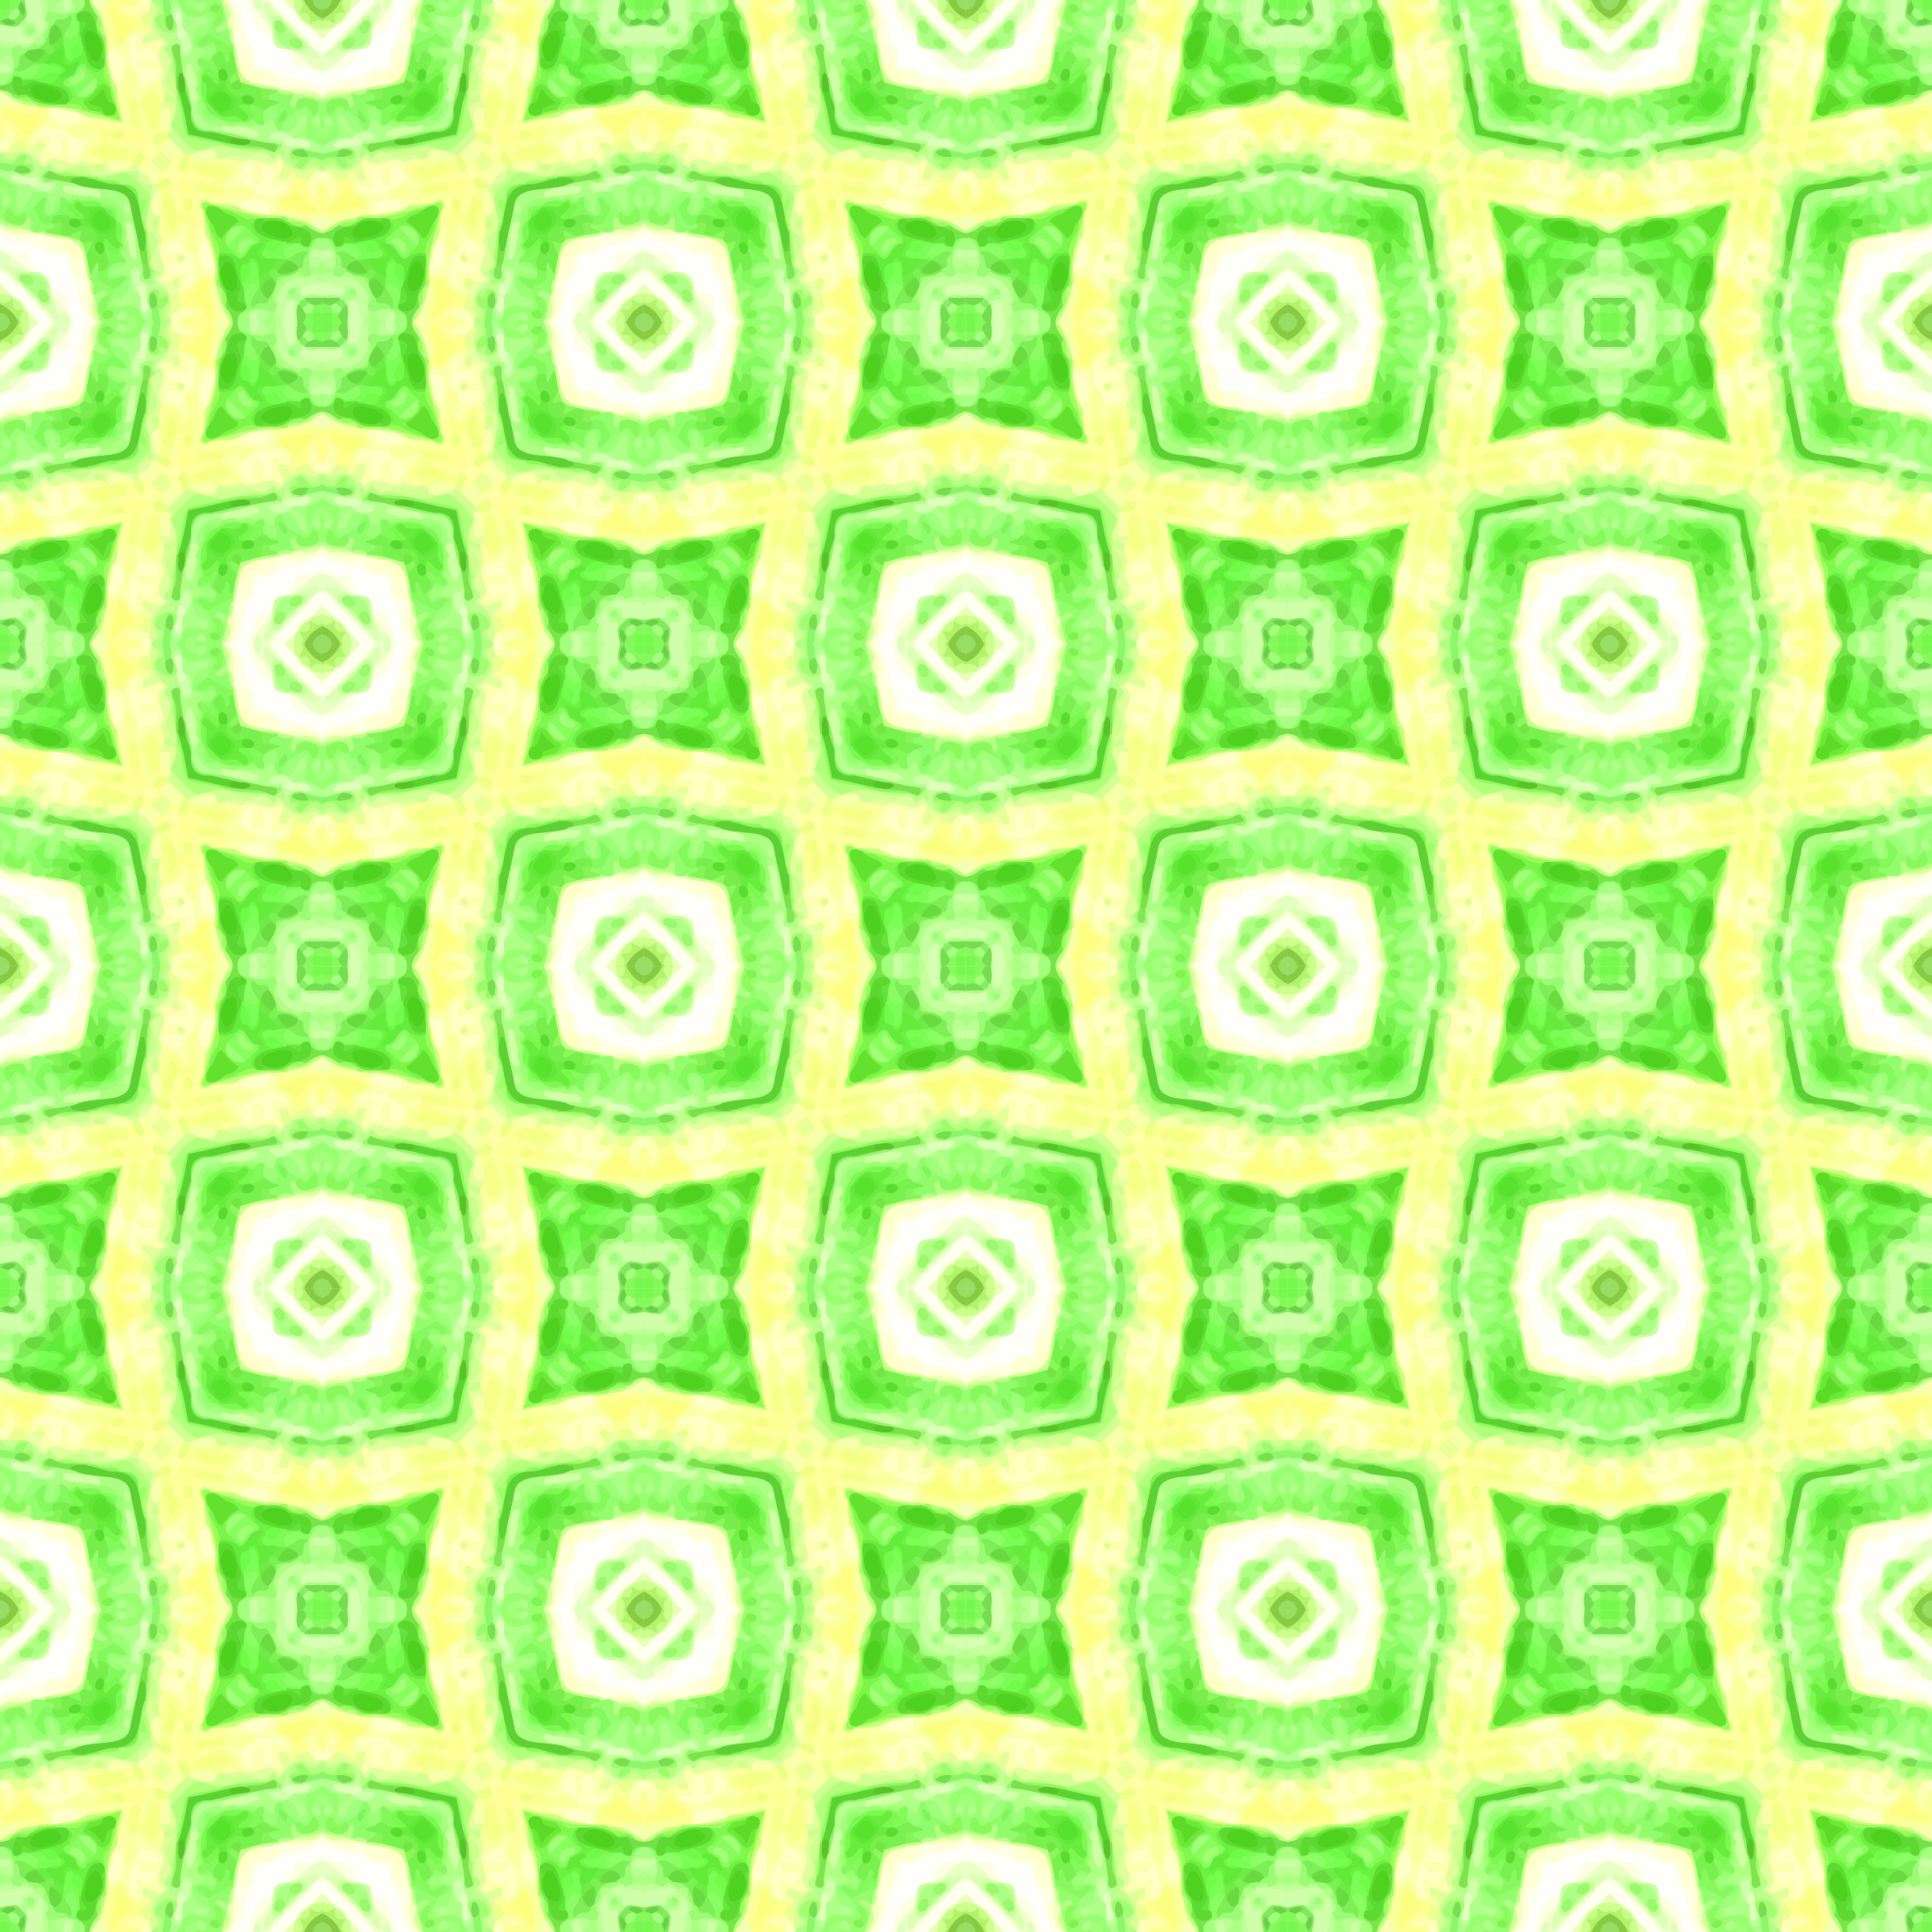 Background pattern 159 (colour 4) by Firkin